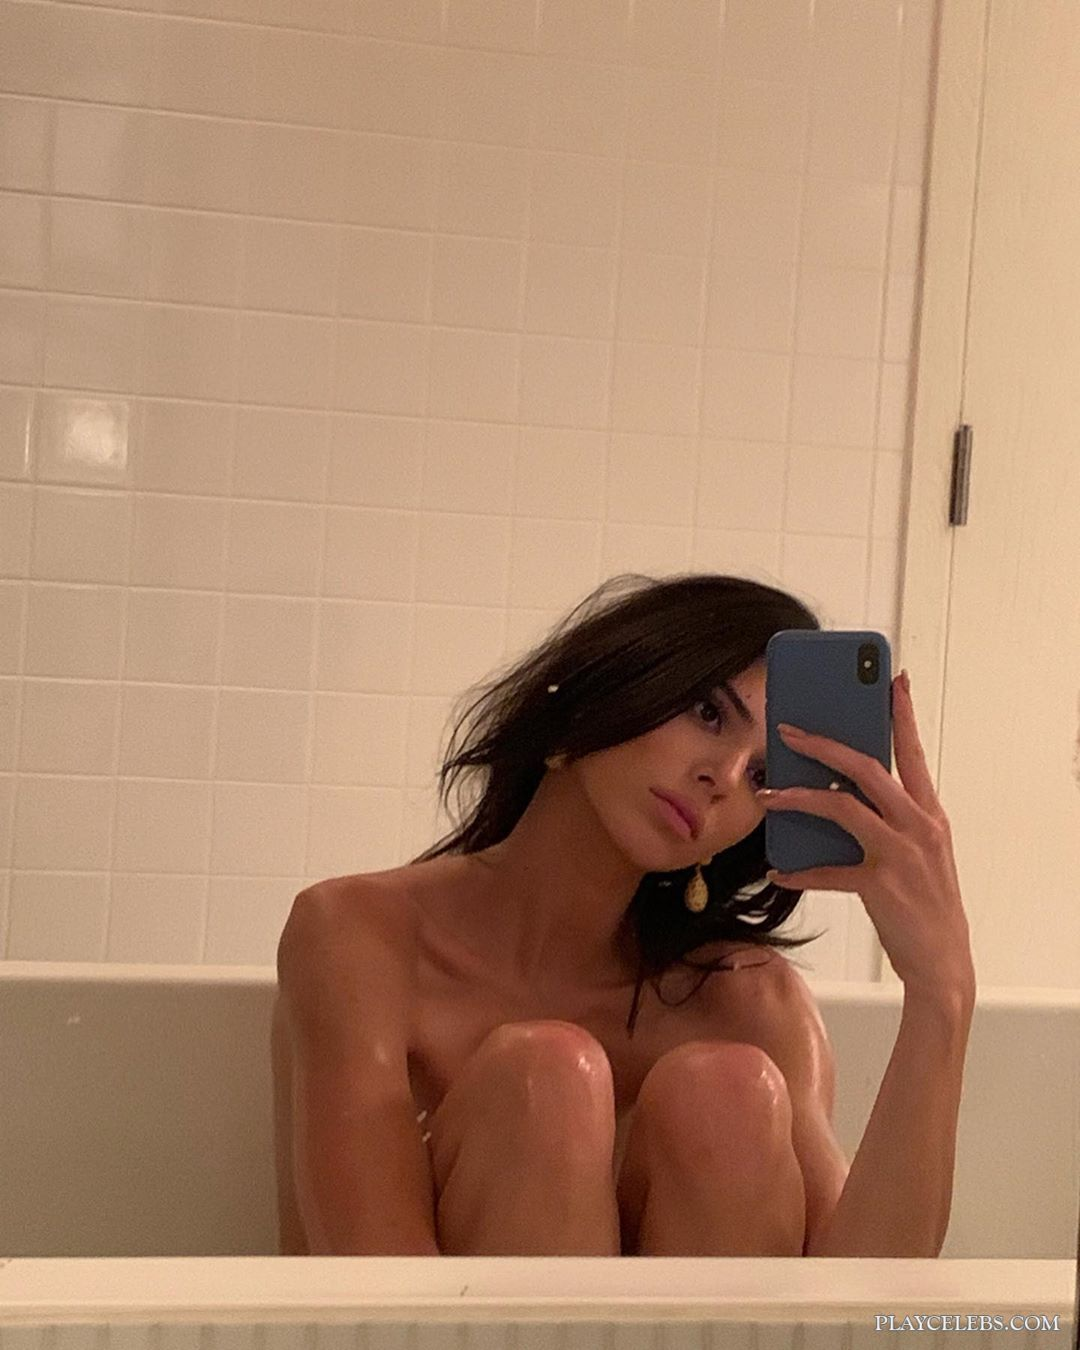 Kendall Jenner Naked In A Bathtub